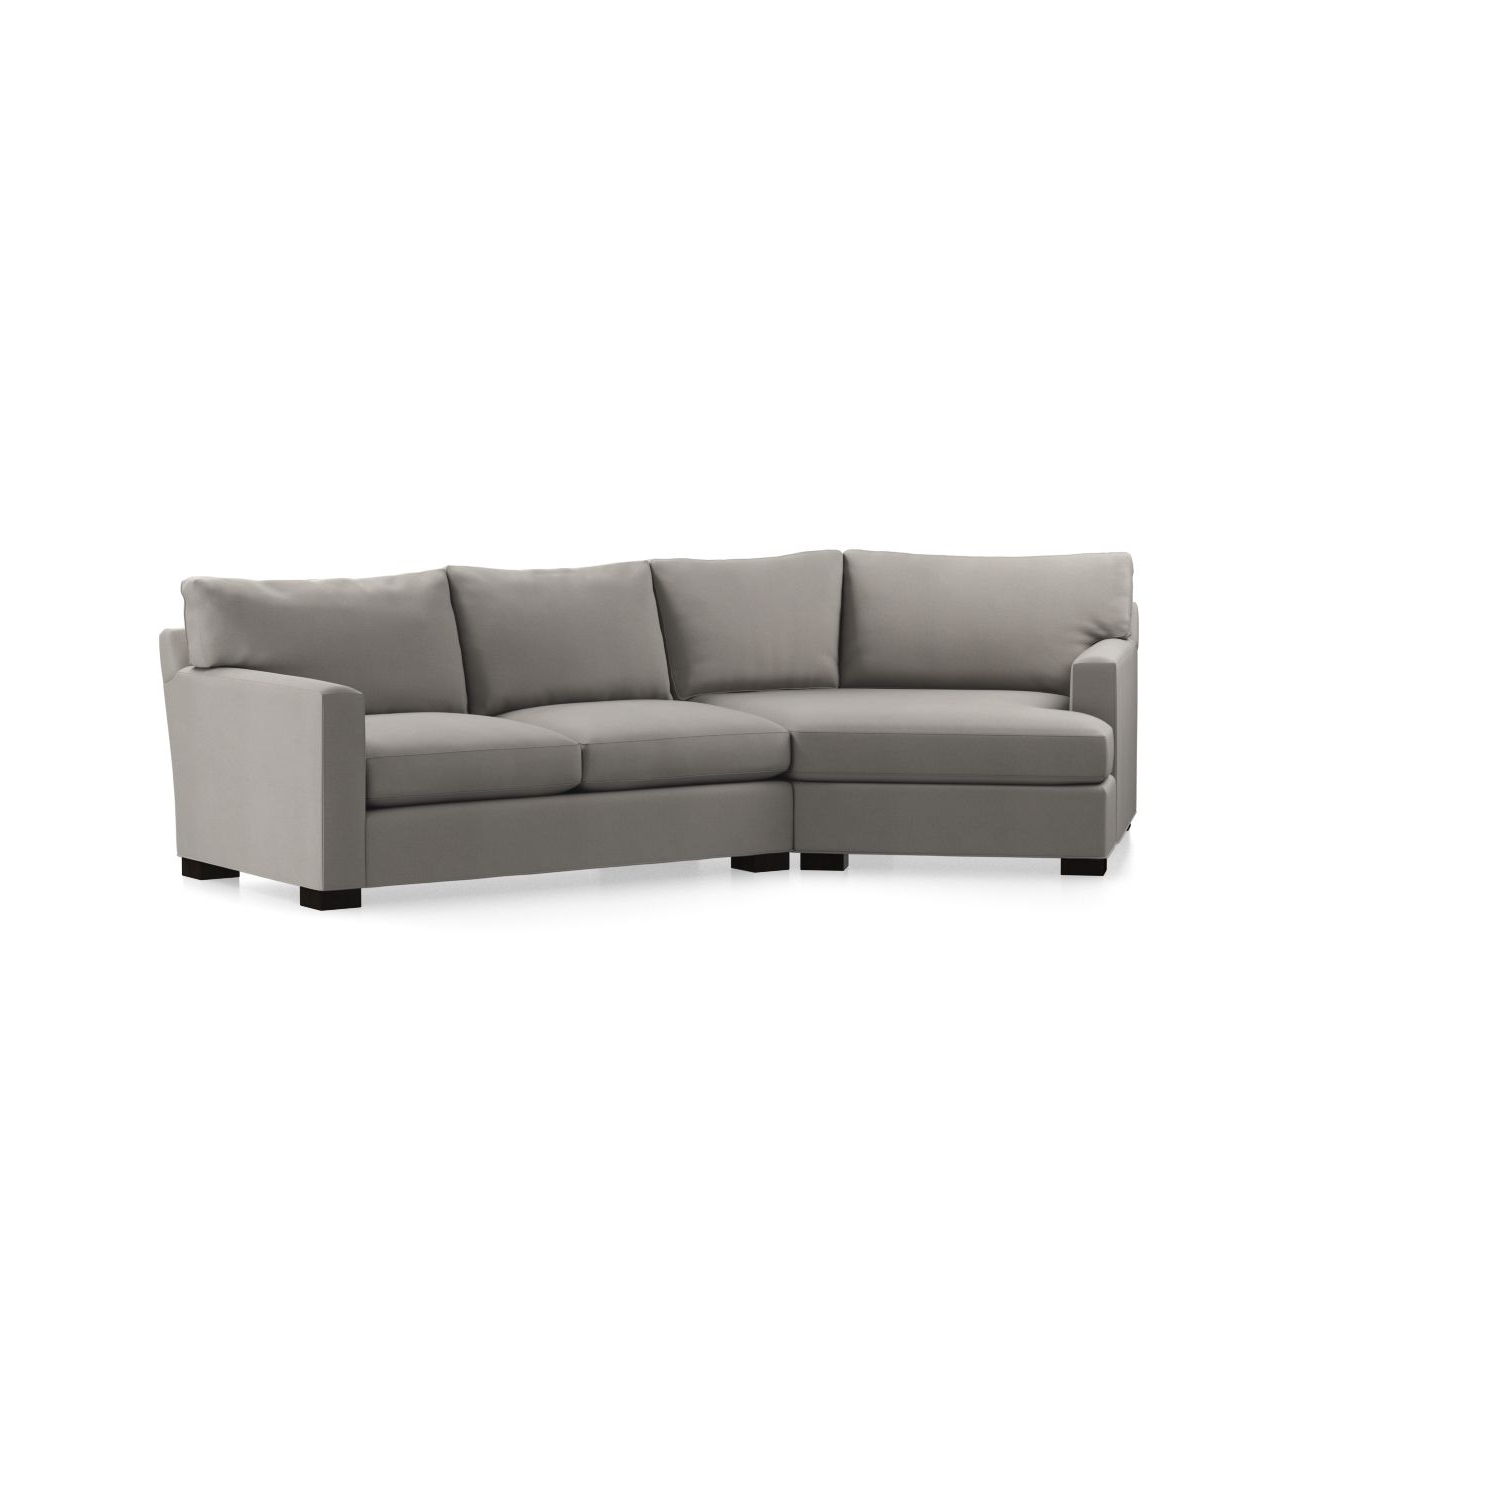 Axis Ii 2 Piece Left Arm Angled Chaise Sectional Sofa In Axis For Most Popular Angled Chaise Sofas (View 10 of 20)